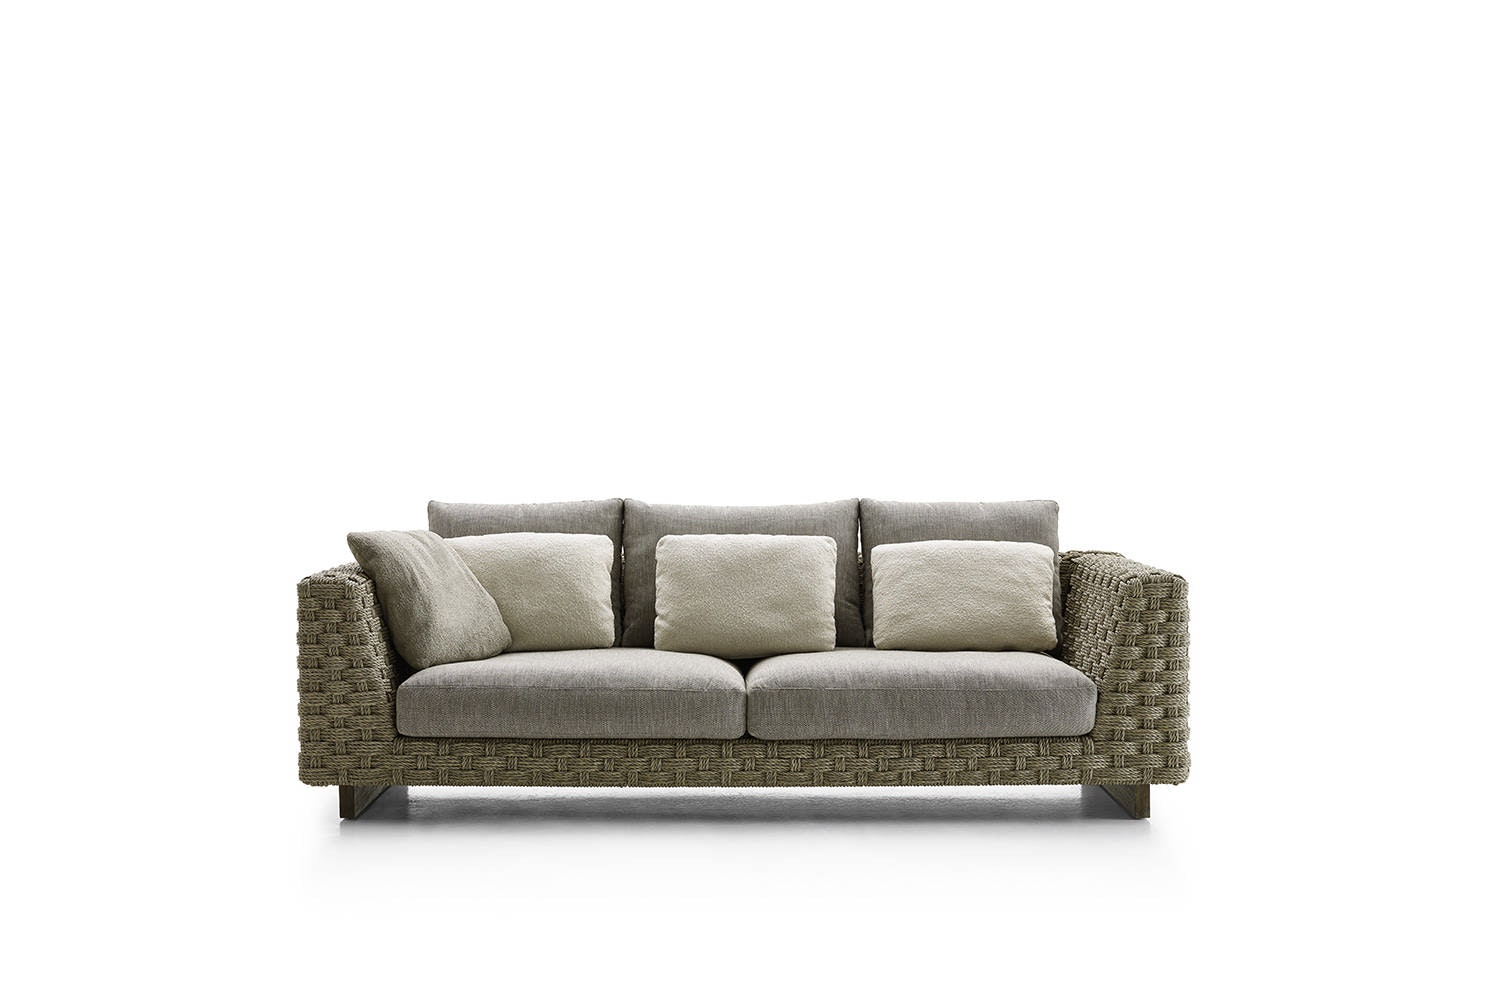 Ray Outdoor Natural Wood Base Sofa By Antonio Citterio For B B